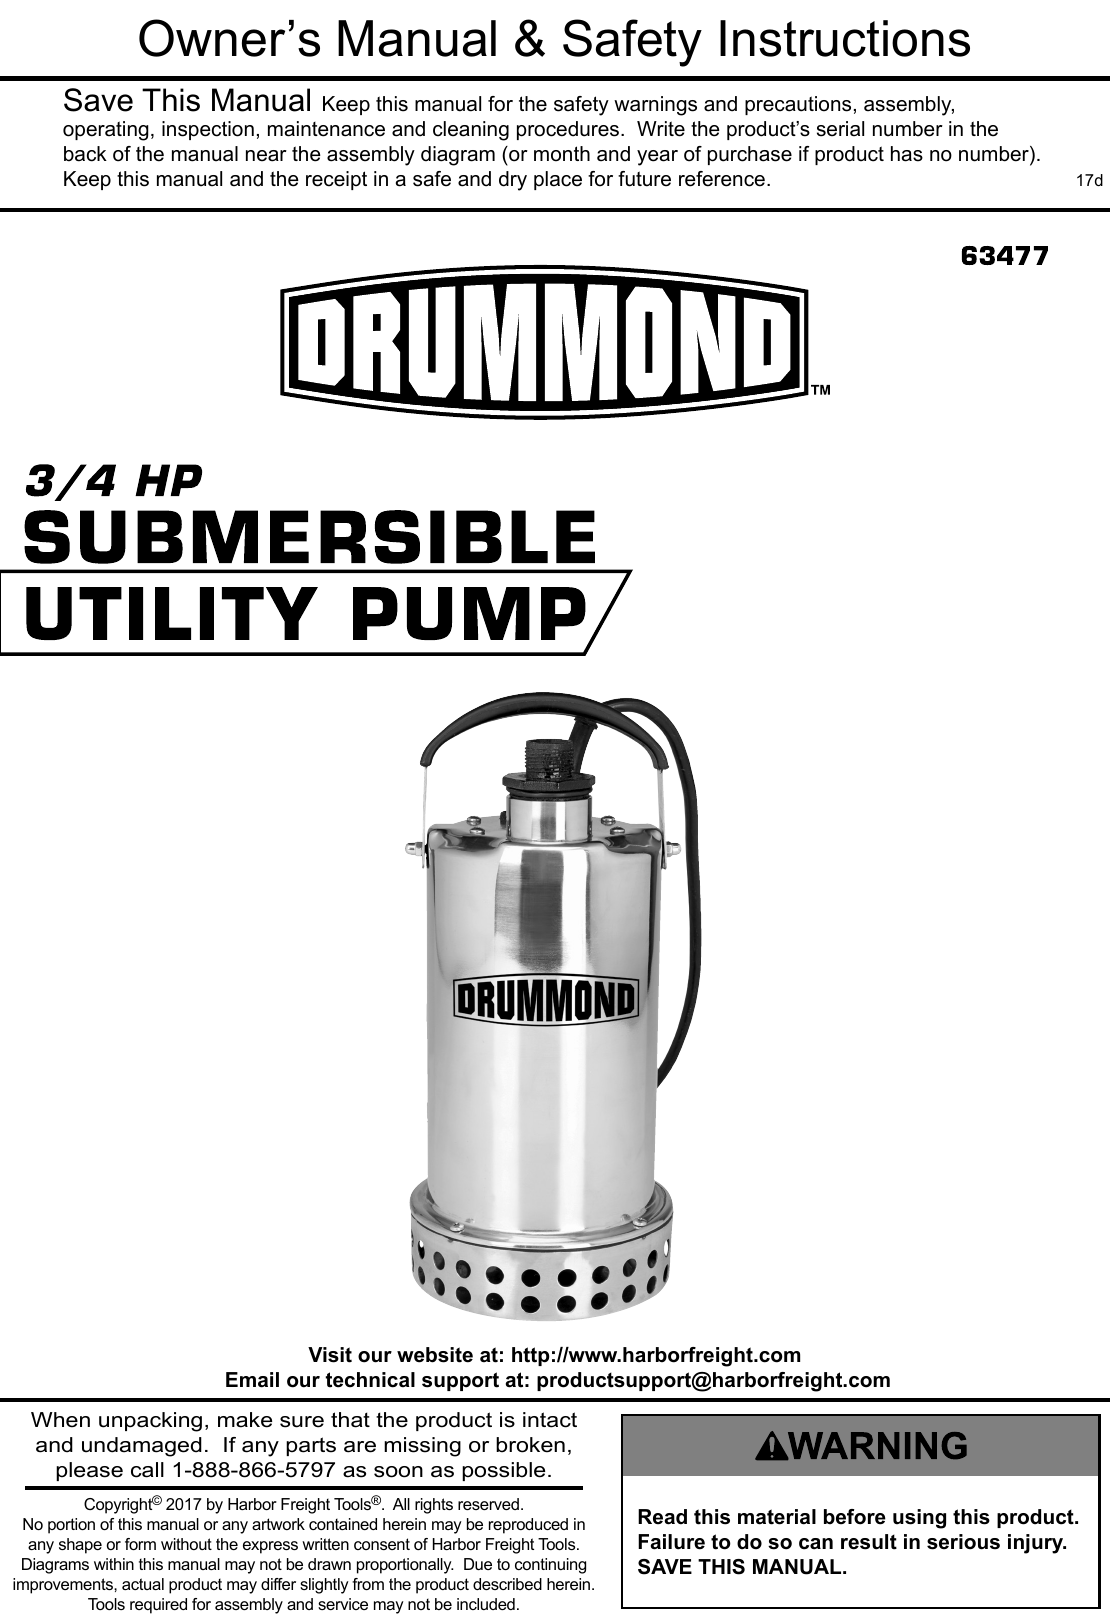 Manual For The 63477 3/4 HP Submersible Utility Pump